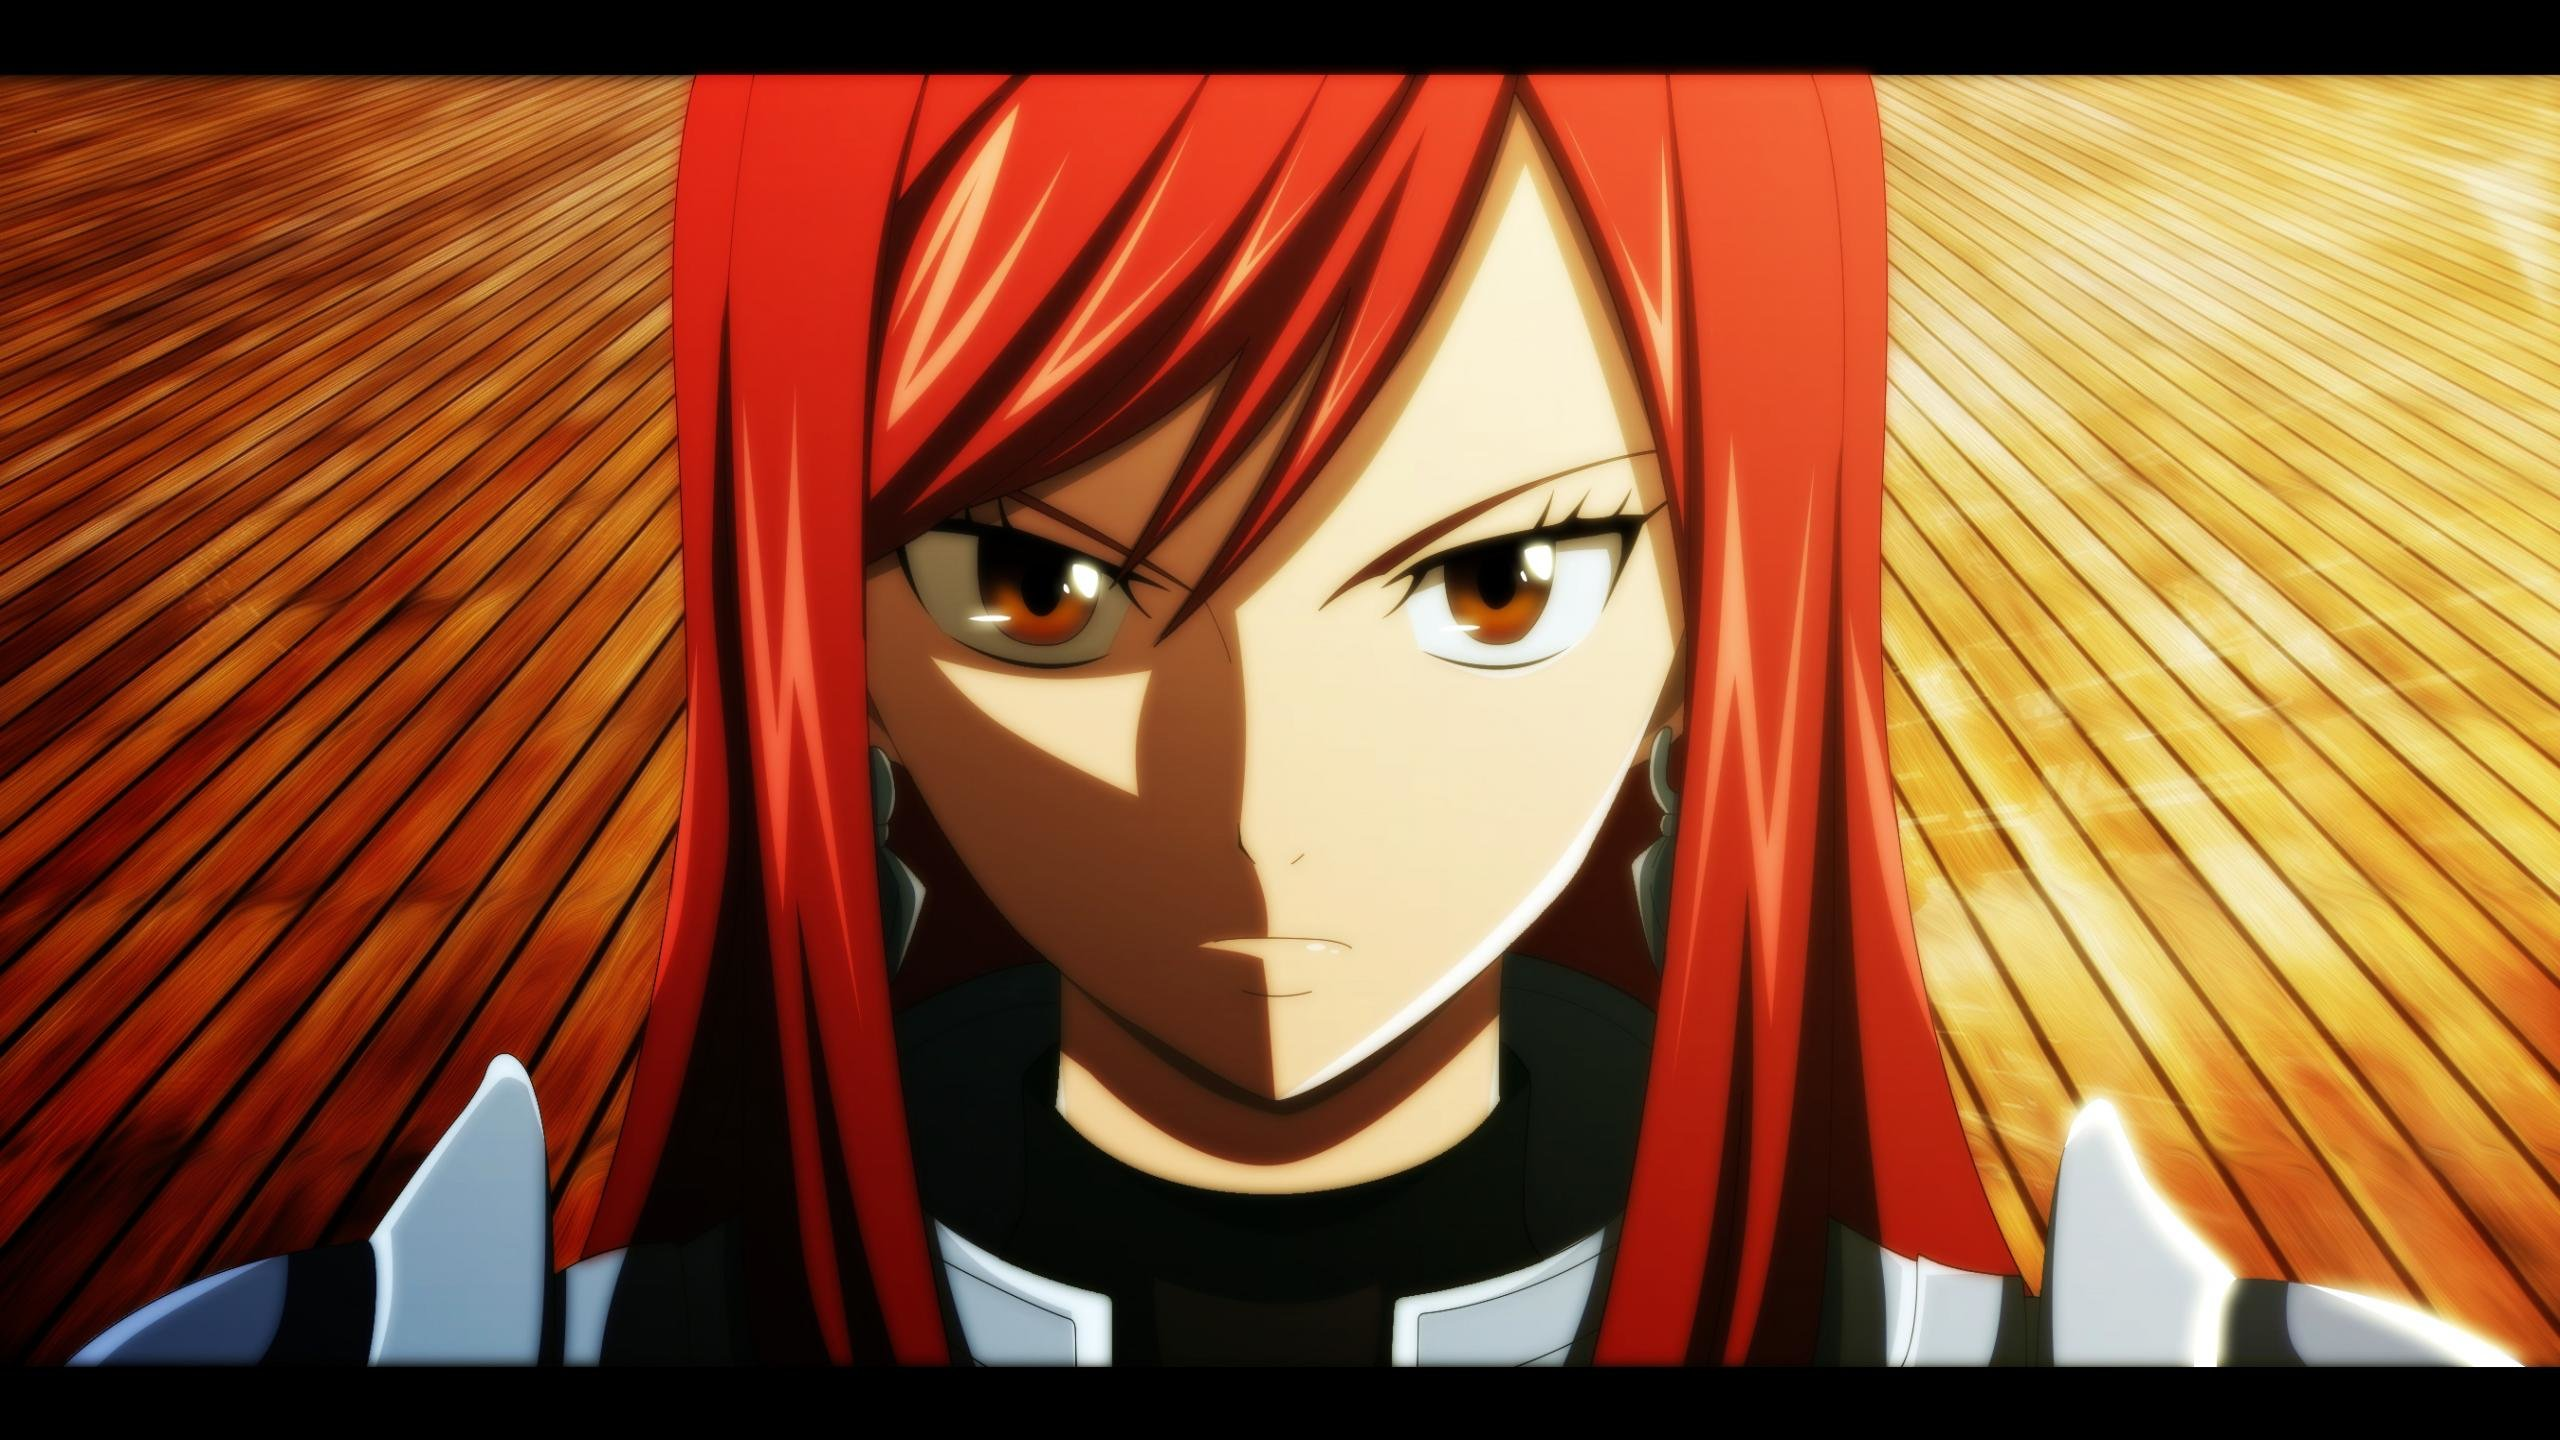 Free download Erza Scarlet background ID:40915 hd 2560x1440 for PC